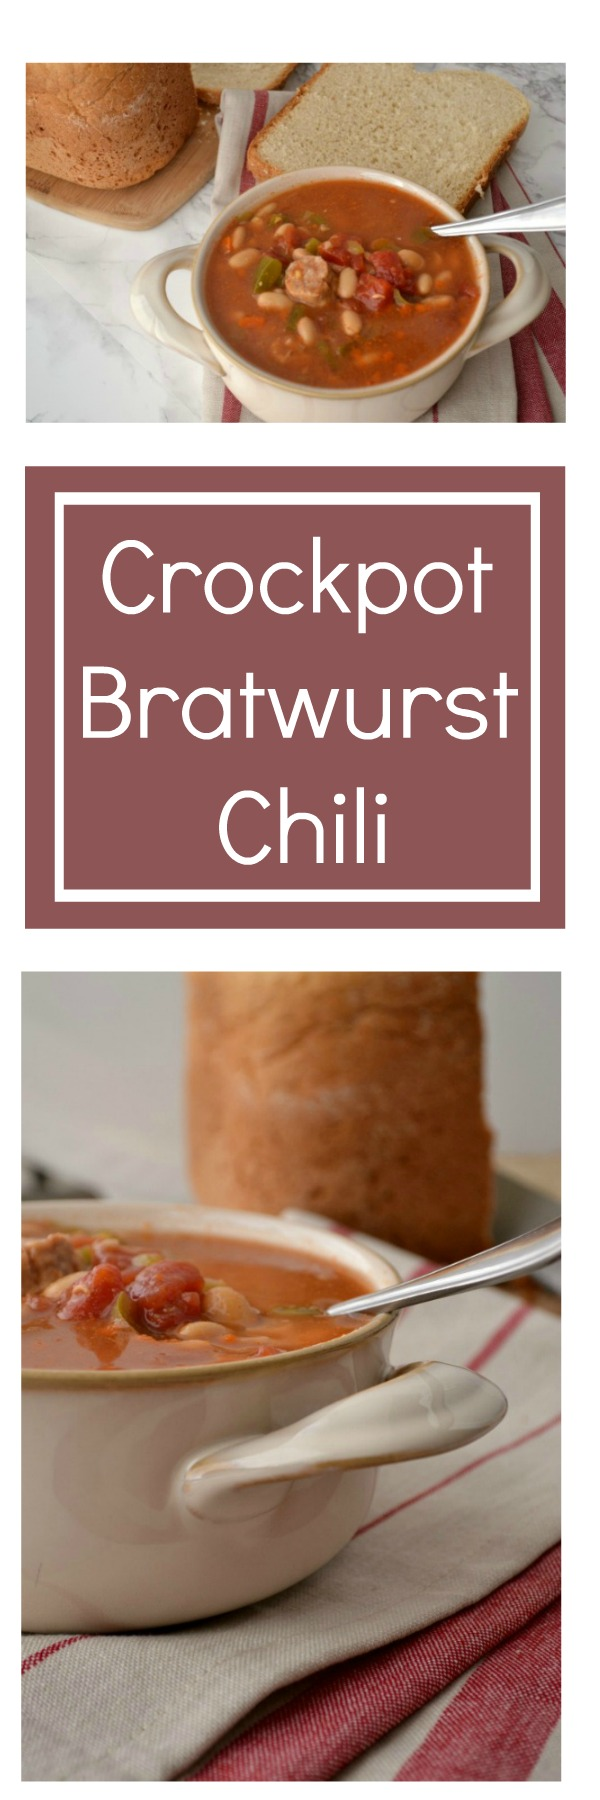 A delicious crock pot chili recipe with bratwurst -- tasty and mild enough for kids!